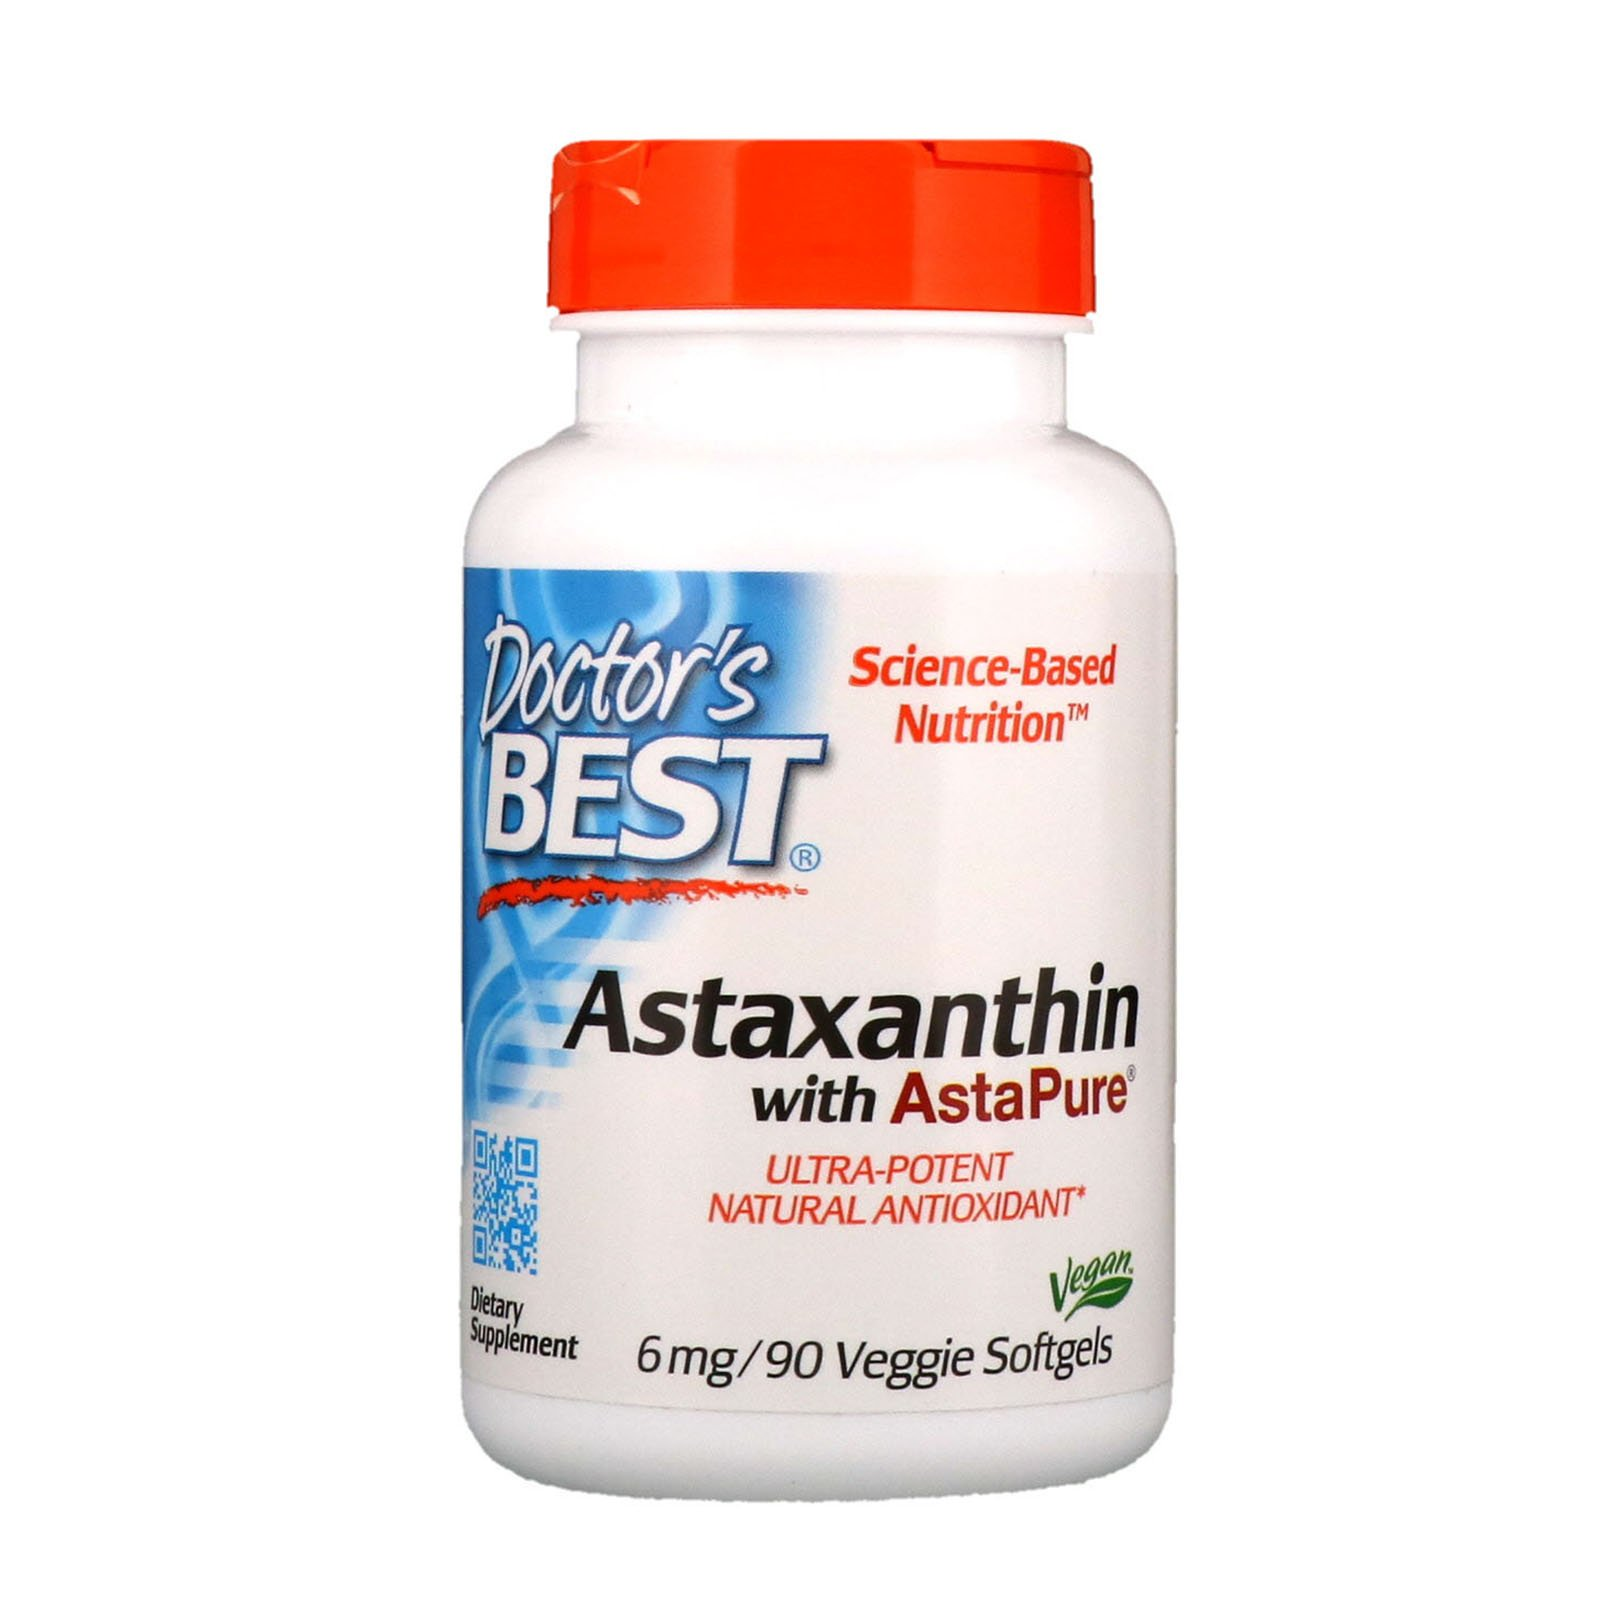 Doctor's Best Astaxanthin, Non-GMO, Gluten Free, Vegan, Soy Free, Powerful Antioxidant, 6 mg, 90 Veggie Softgels